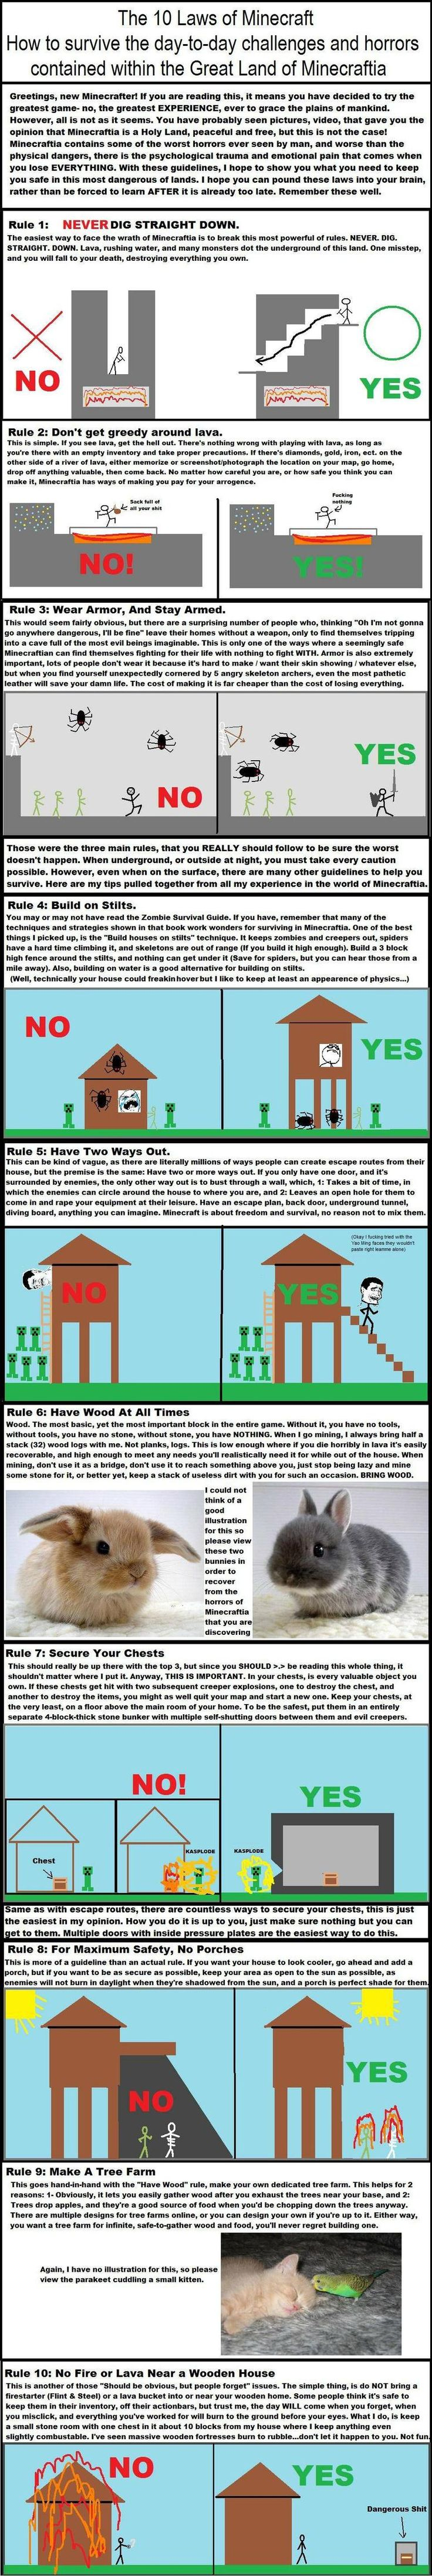 10 Laws of Minecraft. Pinning because I've yelled all of these at someone at one point or another. And had them yelled at me. (I built my house in a cave the first time I played. I remember it with shame.)